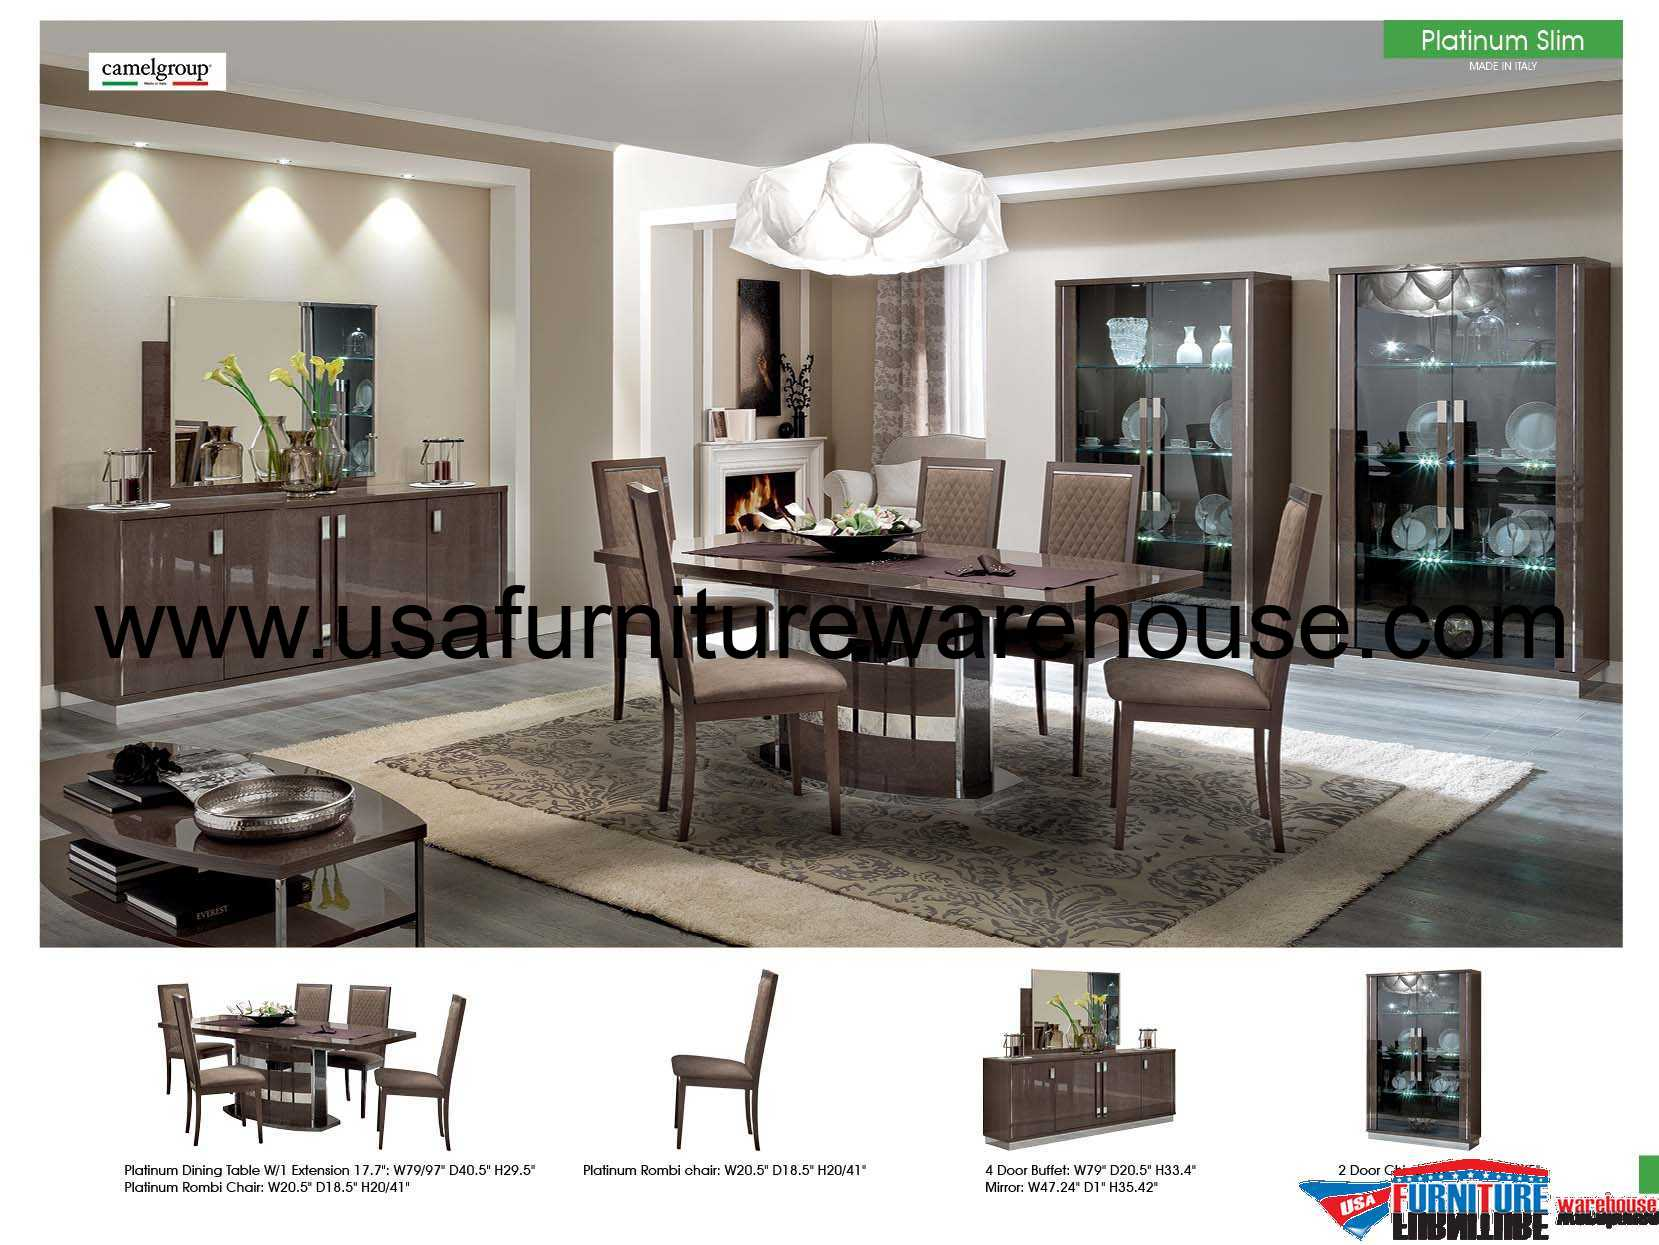 Esf Modern Platinum Slim Dining Set Made In Italy Usa Furniture Warehouse